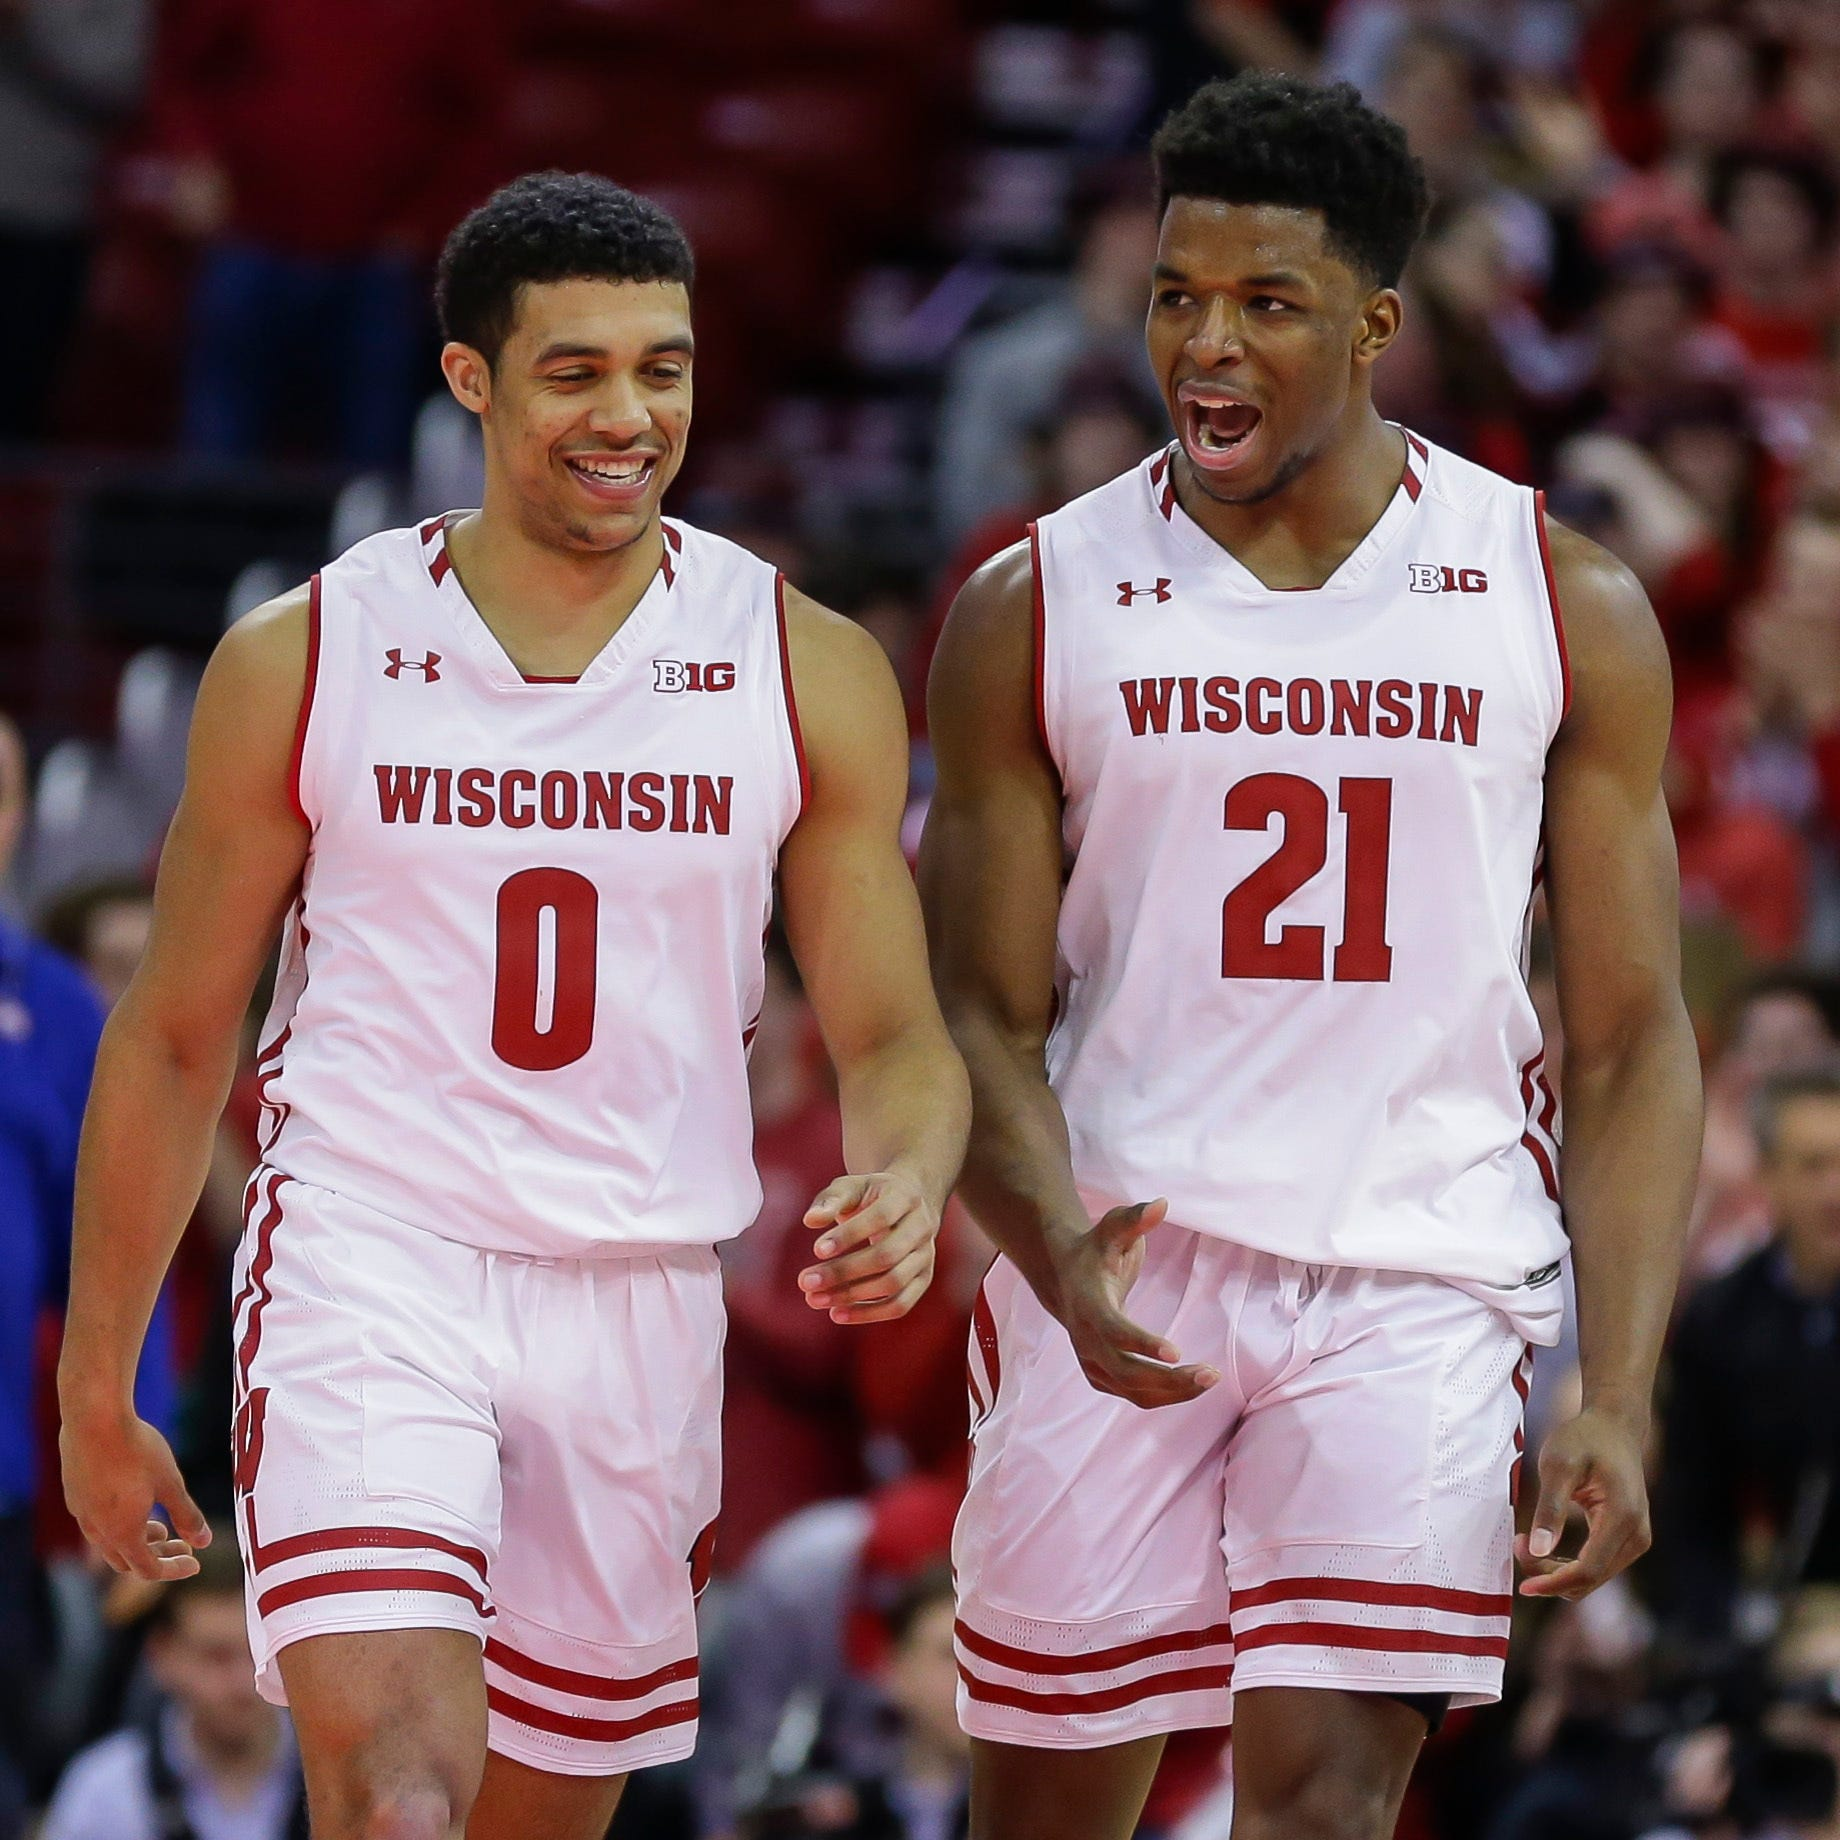 Wisconsin 64, Illinois 58: Badgers survive cold night on offense